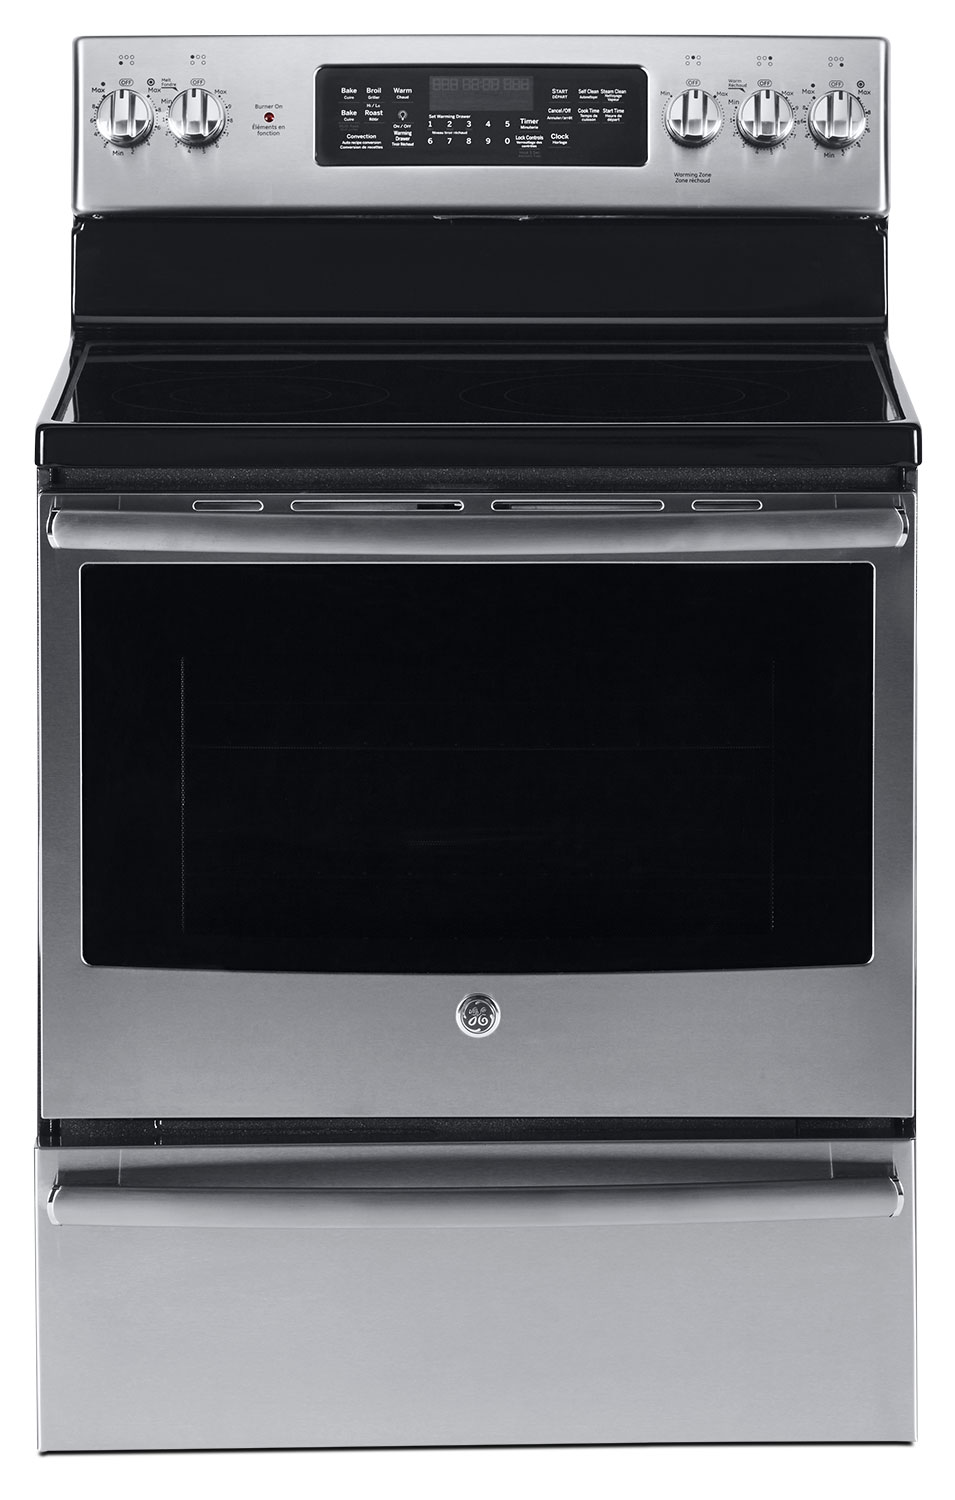 GE 5.0 Cu. Ft. Freestanding Electric Range with Warming Drawer – JCB860SKSS